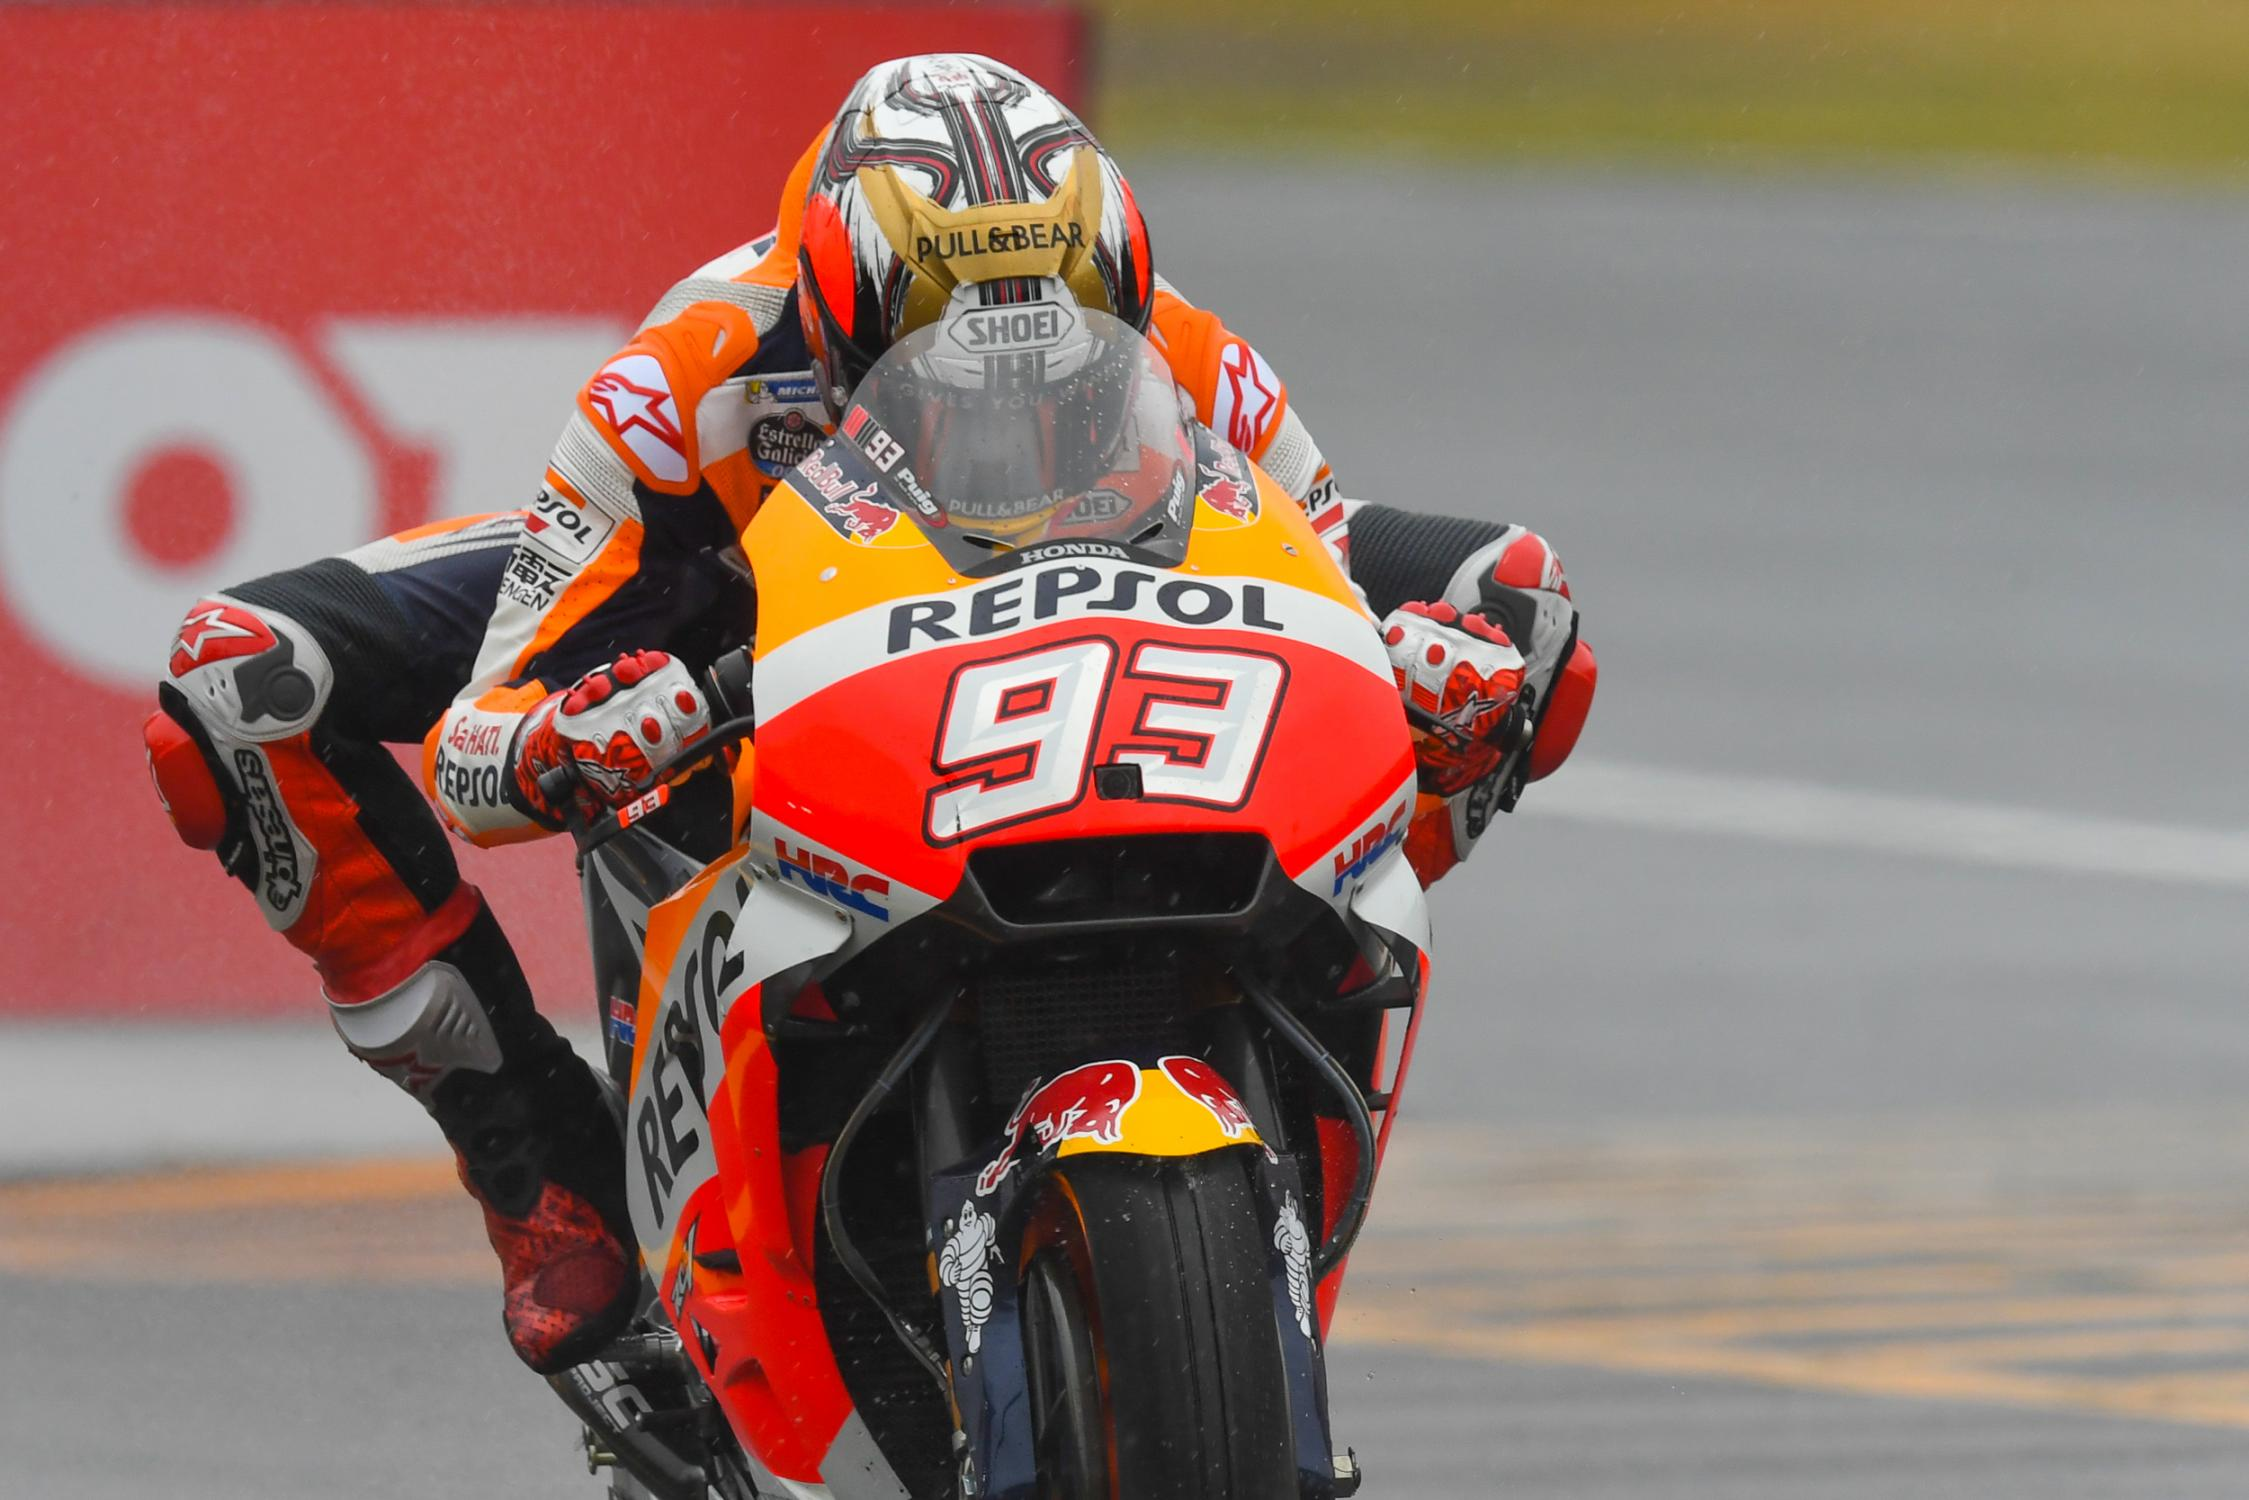 93-marc-marquez-espdsc_2816.gallery_full_top_fullscreen.jpg